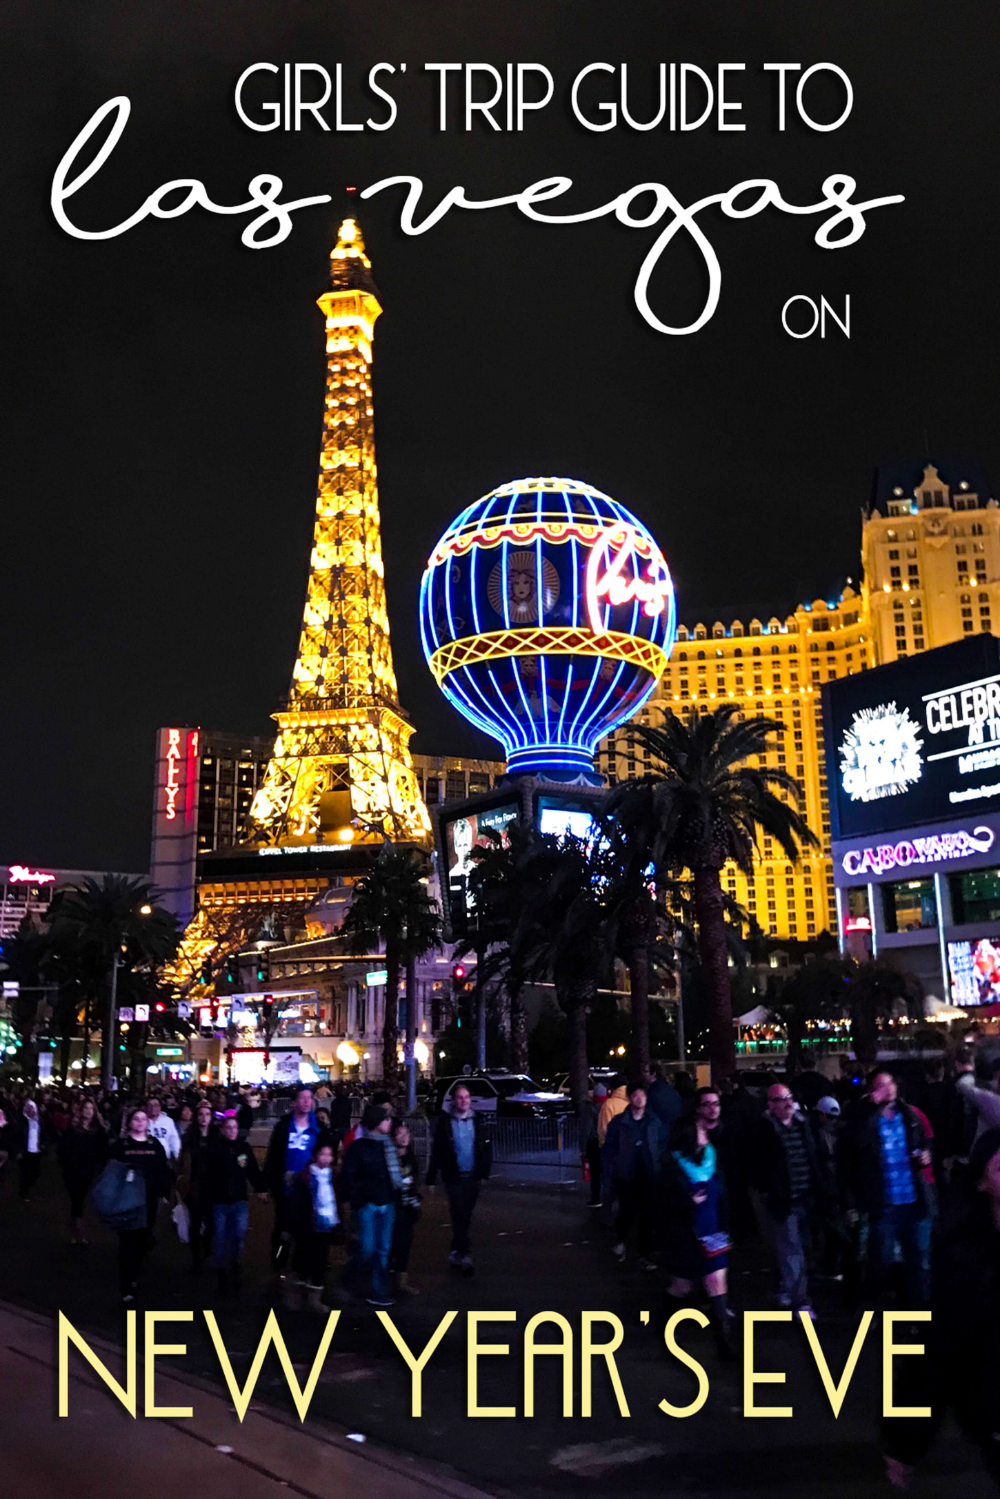 Girls' Trip Guide to Las Vegas on New Year's Eve | Girls ...